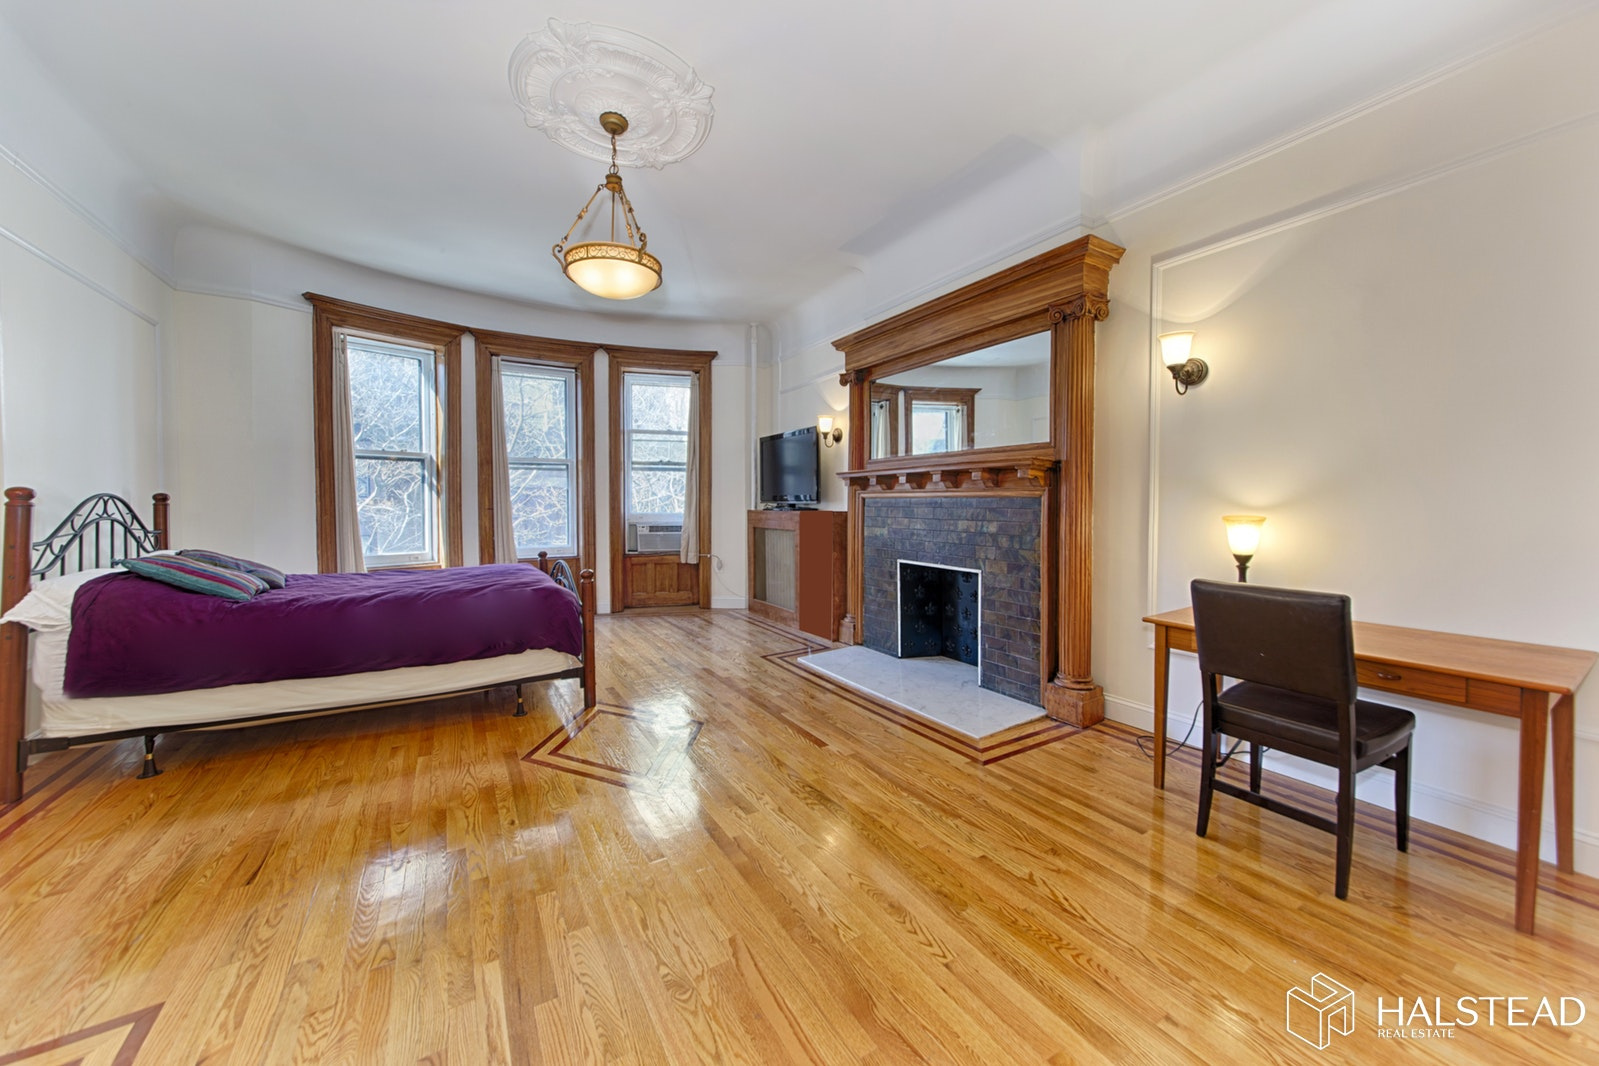 345 West  84th Street  5, Upper West Side, NYC, 10024, Price Not Disclosed, Rented Property, ID# 16336929, Halstead